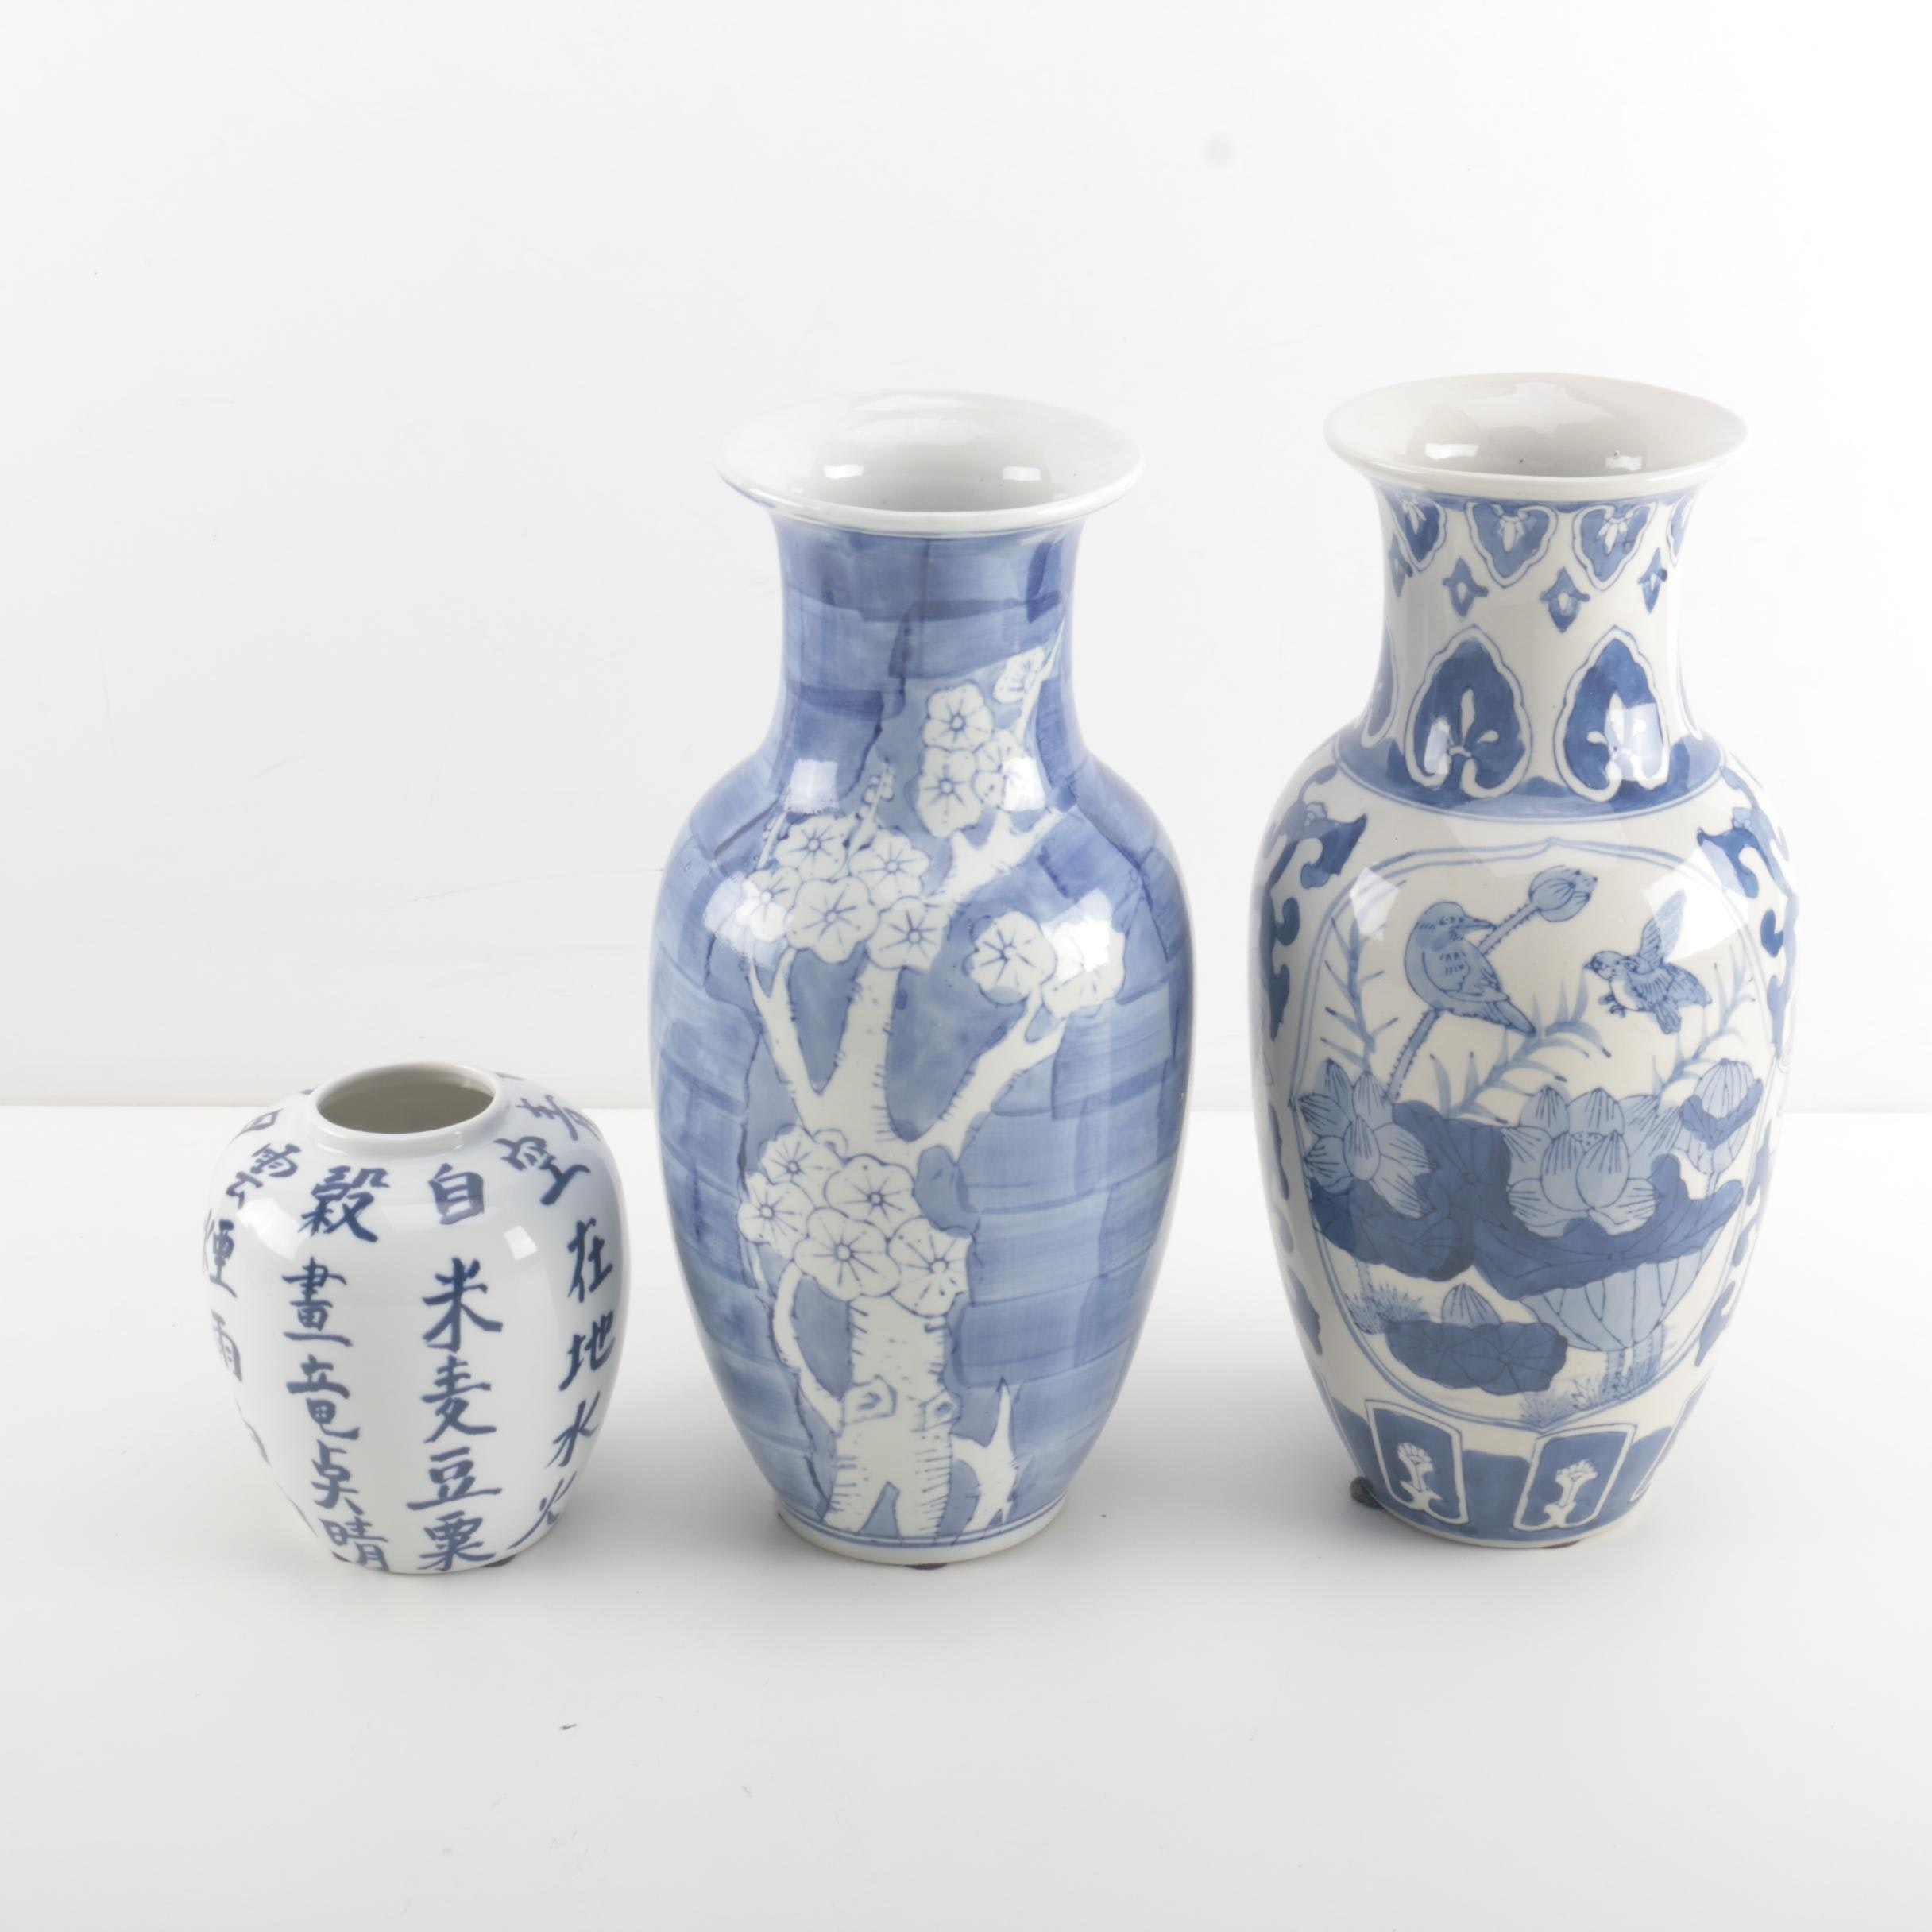 Selection of Chinese Ceramic Vases